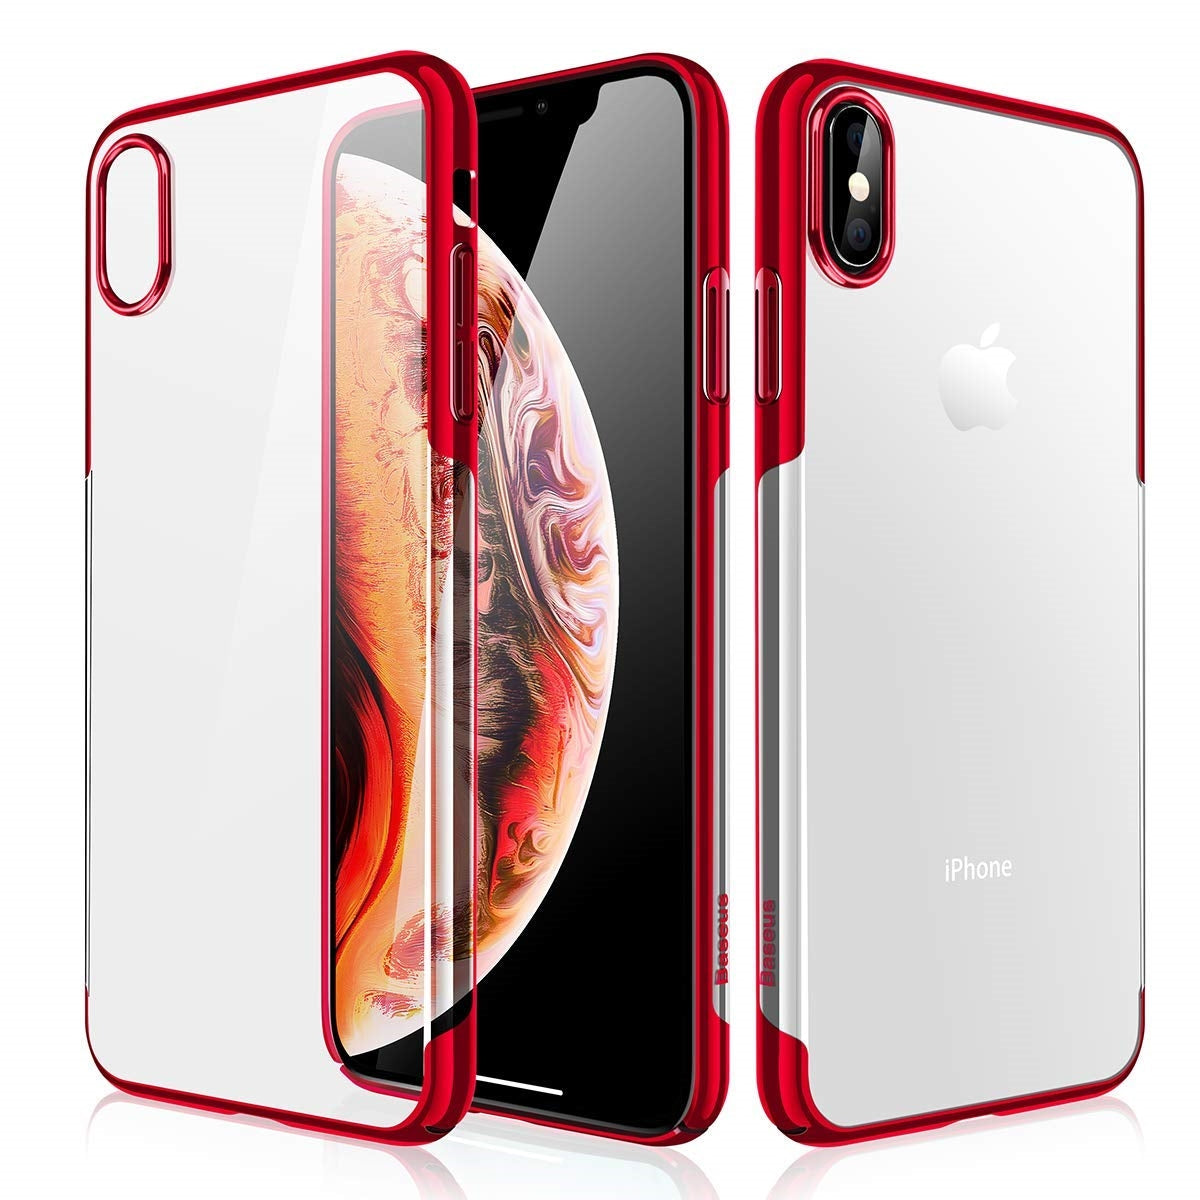 iPhone XS MAX 6.5'' 2018 Clear Case, AICase Shinning Electroplating Design PC Bumper Clear Back Protective Cover Bumper for Apple iPhone Xs MAX 6.5'' 2018